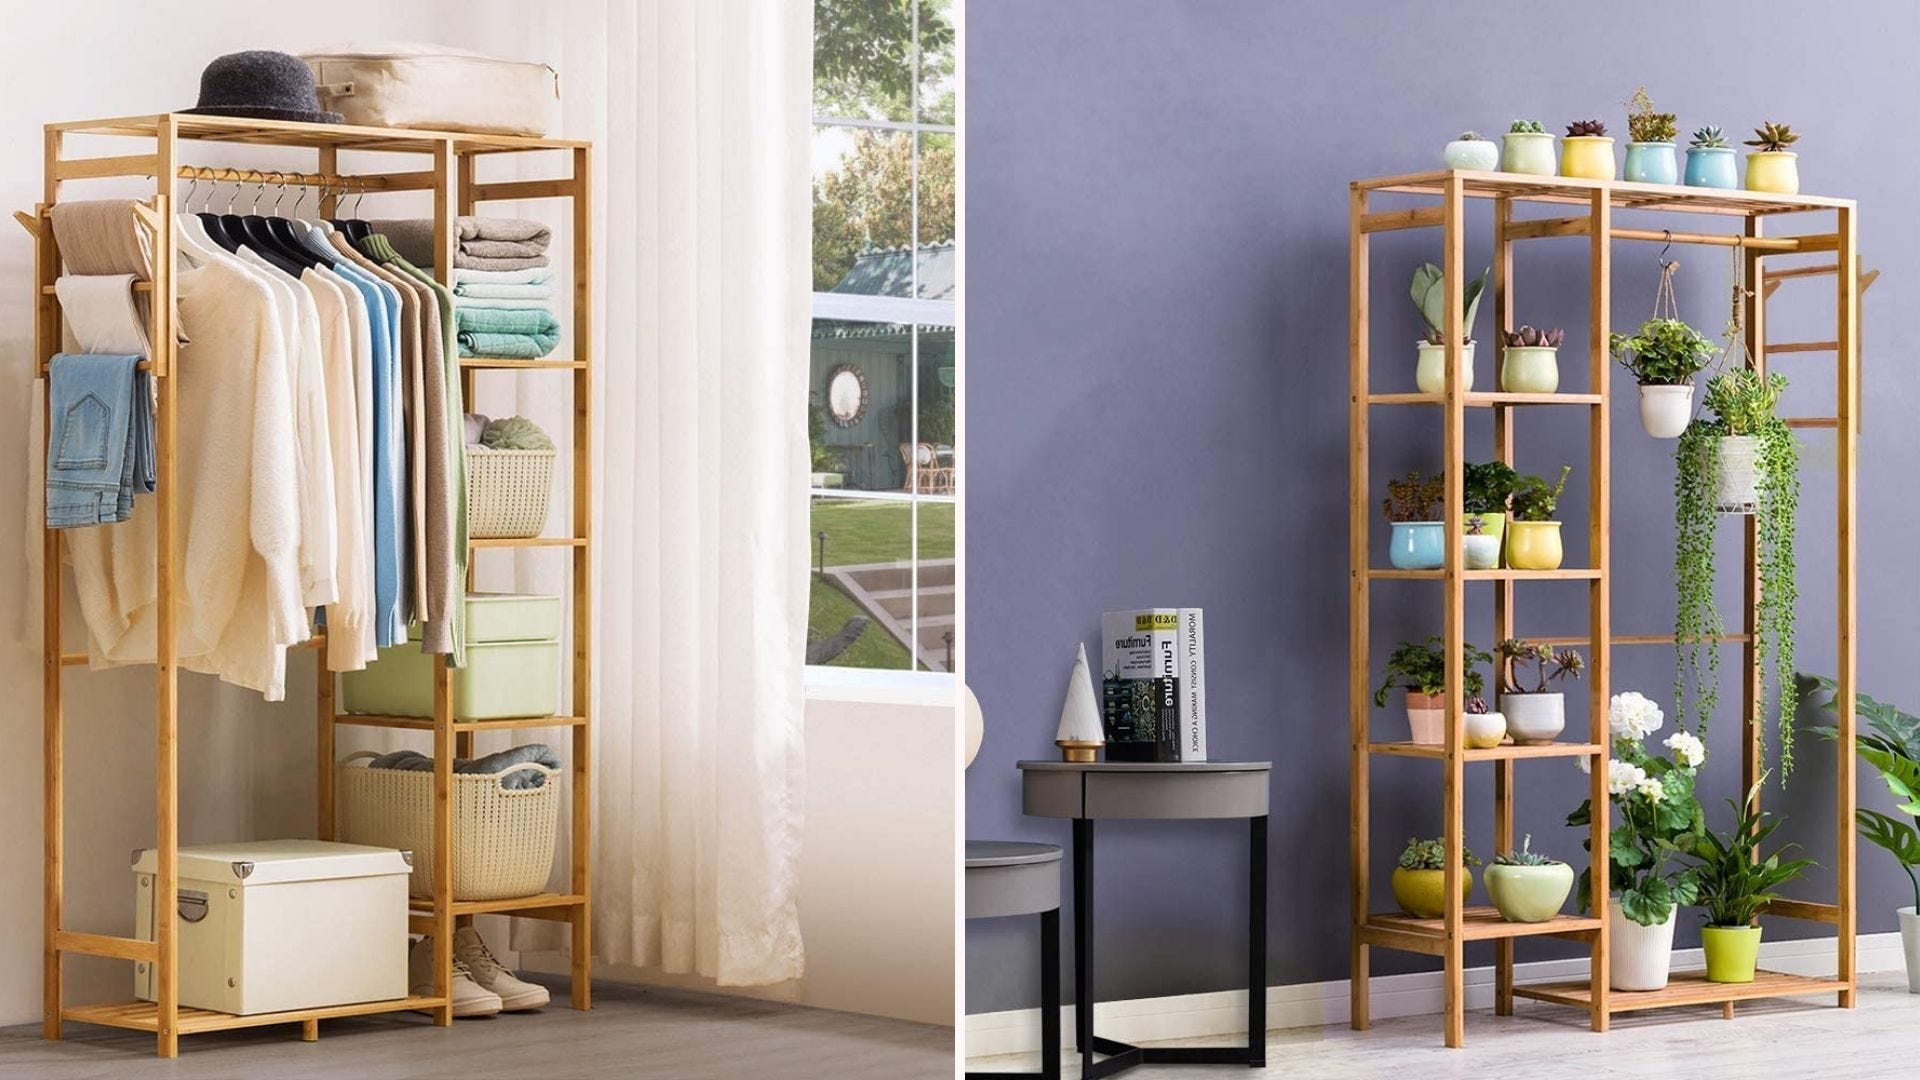 Images of a clothing rack filled with clothes and with plants.